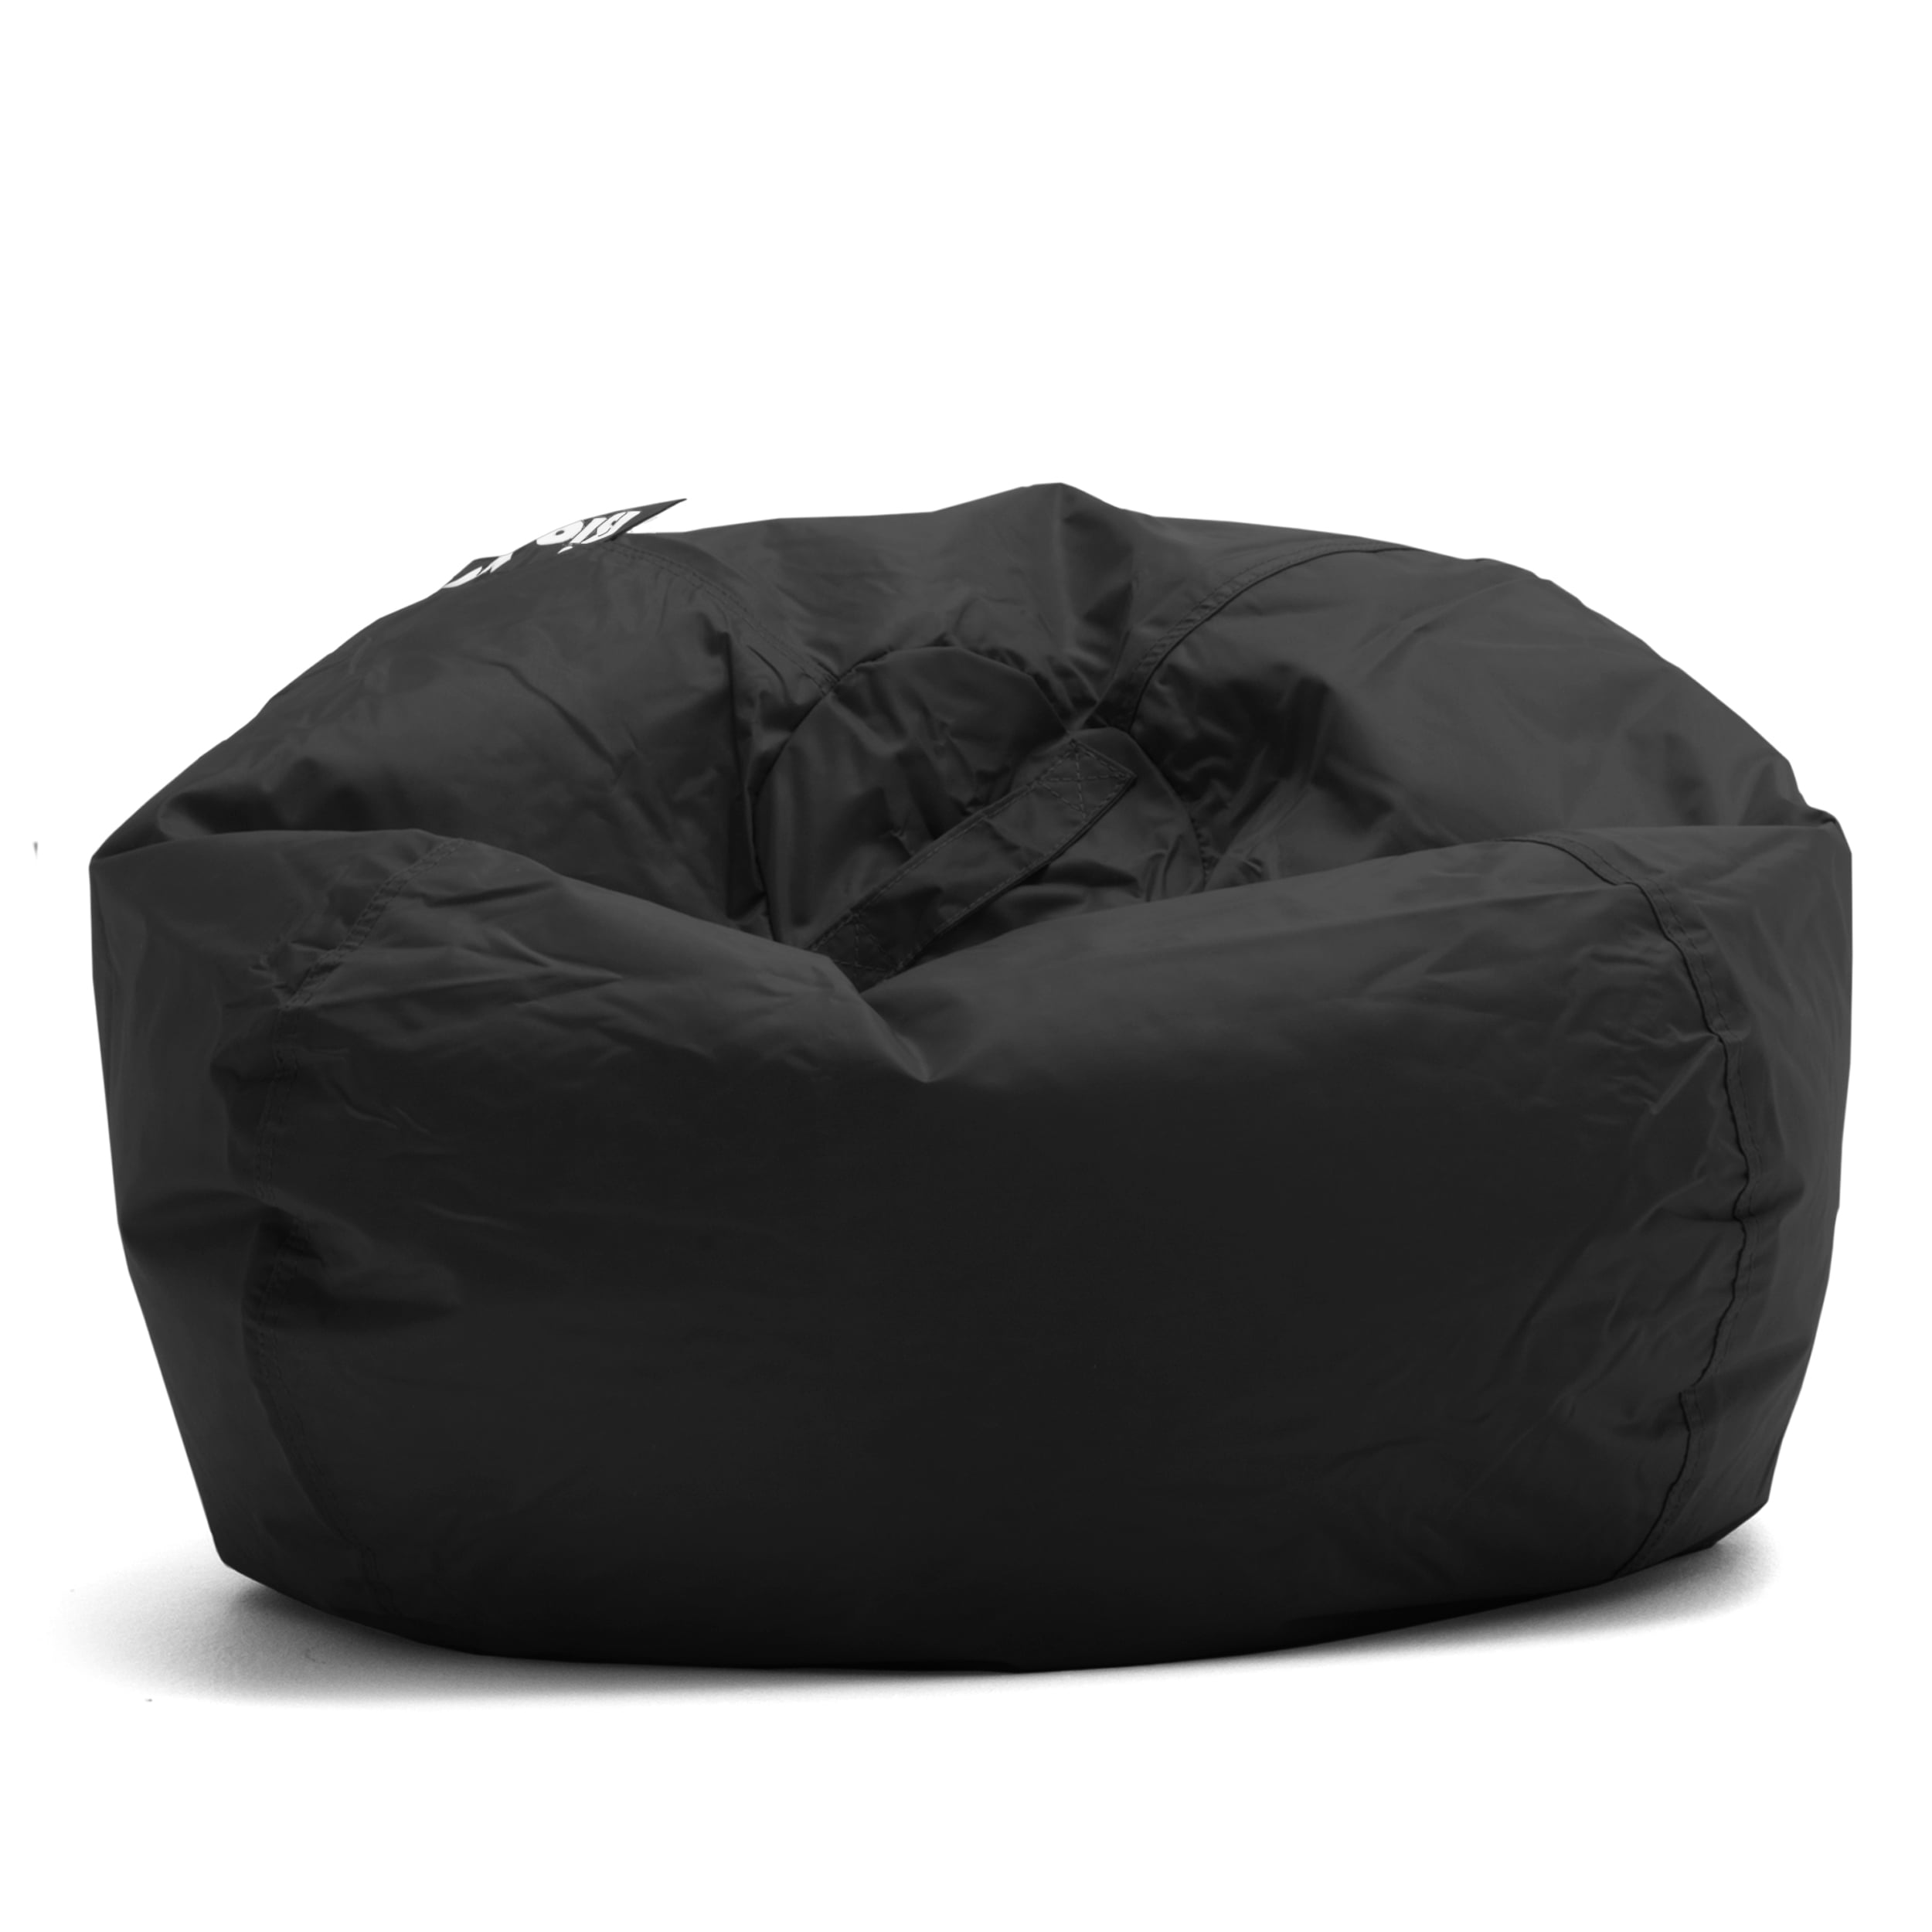 98 Quot Big Joe Round Bean Bag Chair Multiple Colors